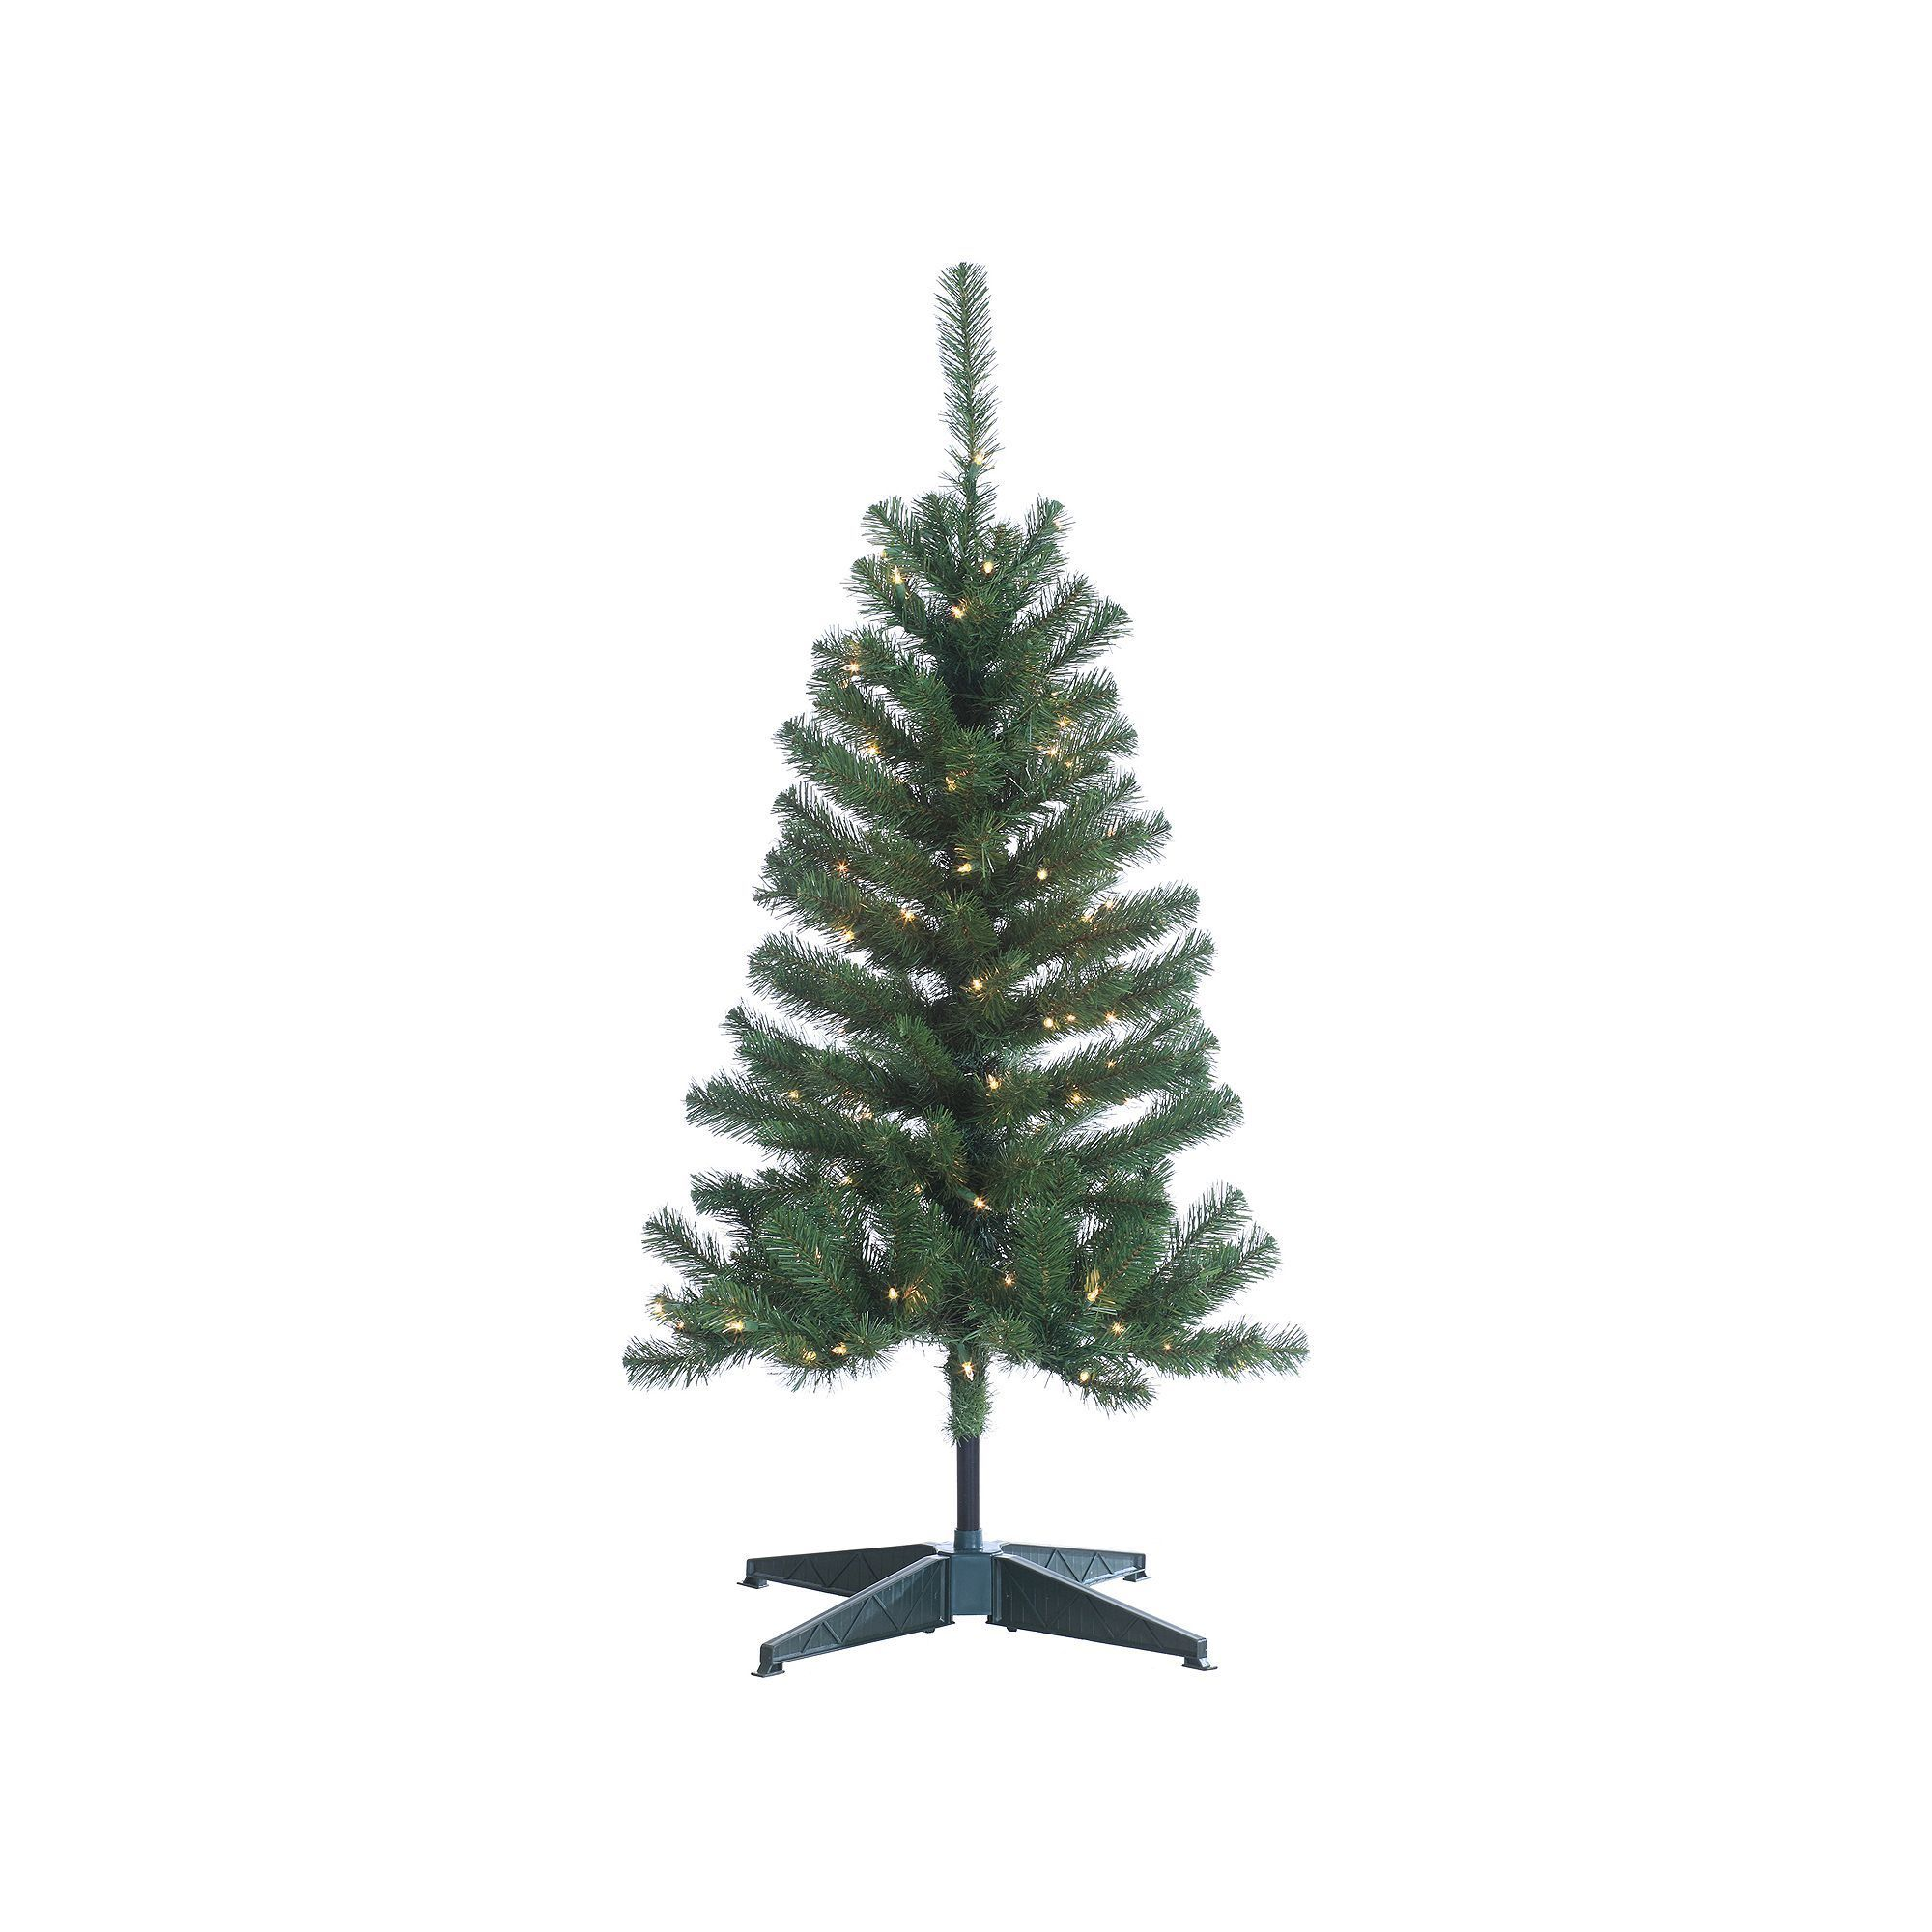 sterling 4 cumberland pine artificial christmas tree - Sterling Christmas Trees